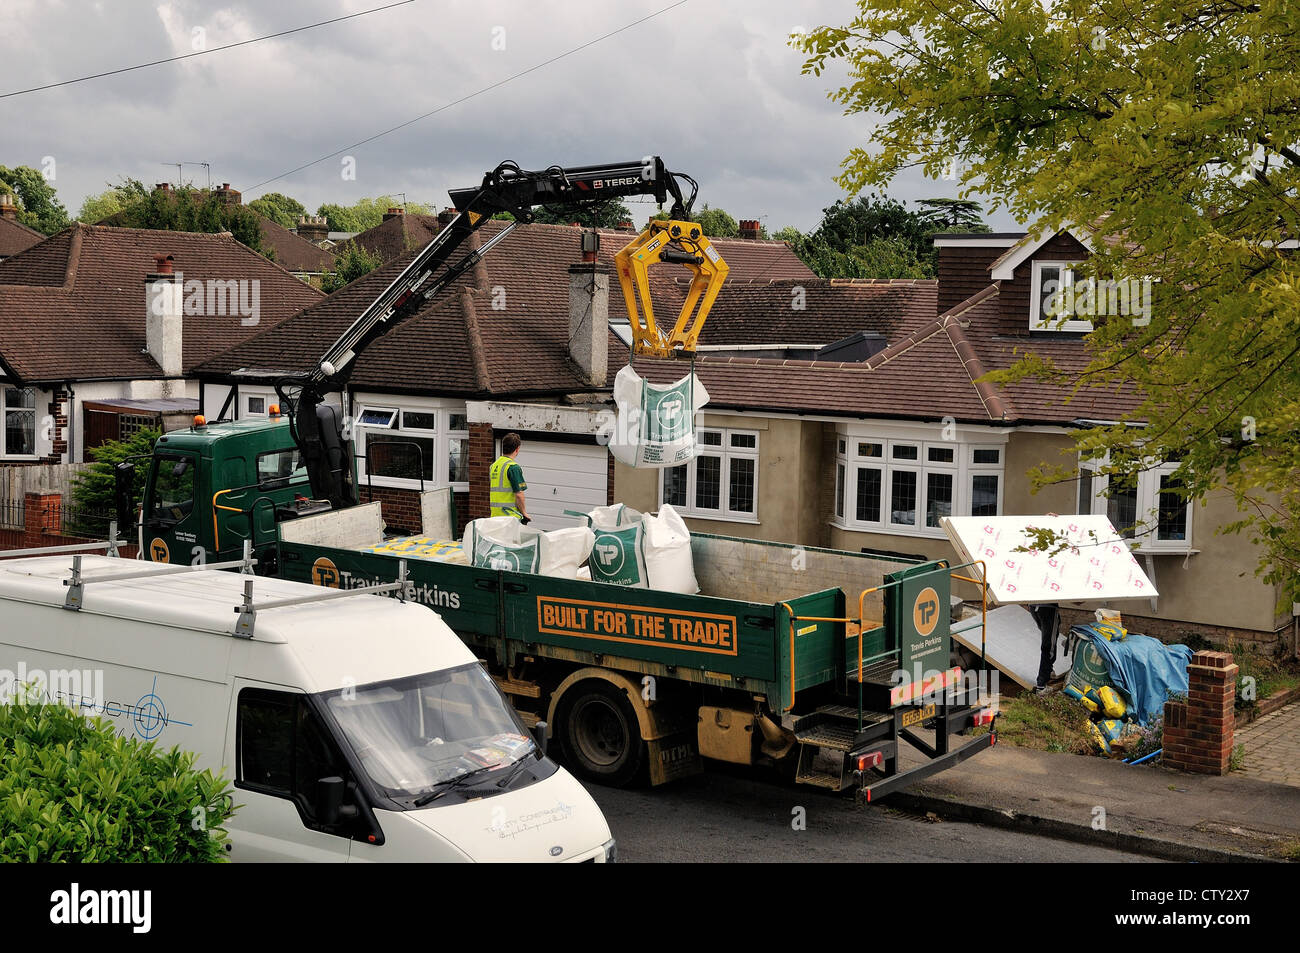 Builders merchant stock photos builders merchant stock images travis perkins lorry delivering building materials stock image baanklon Choice Image